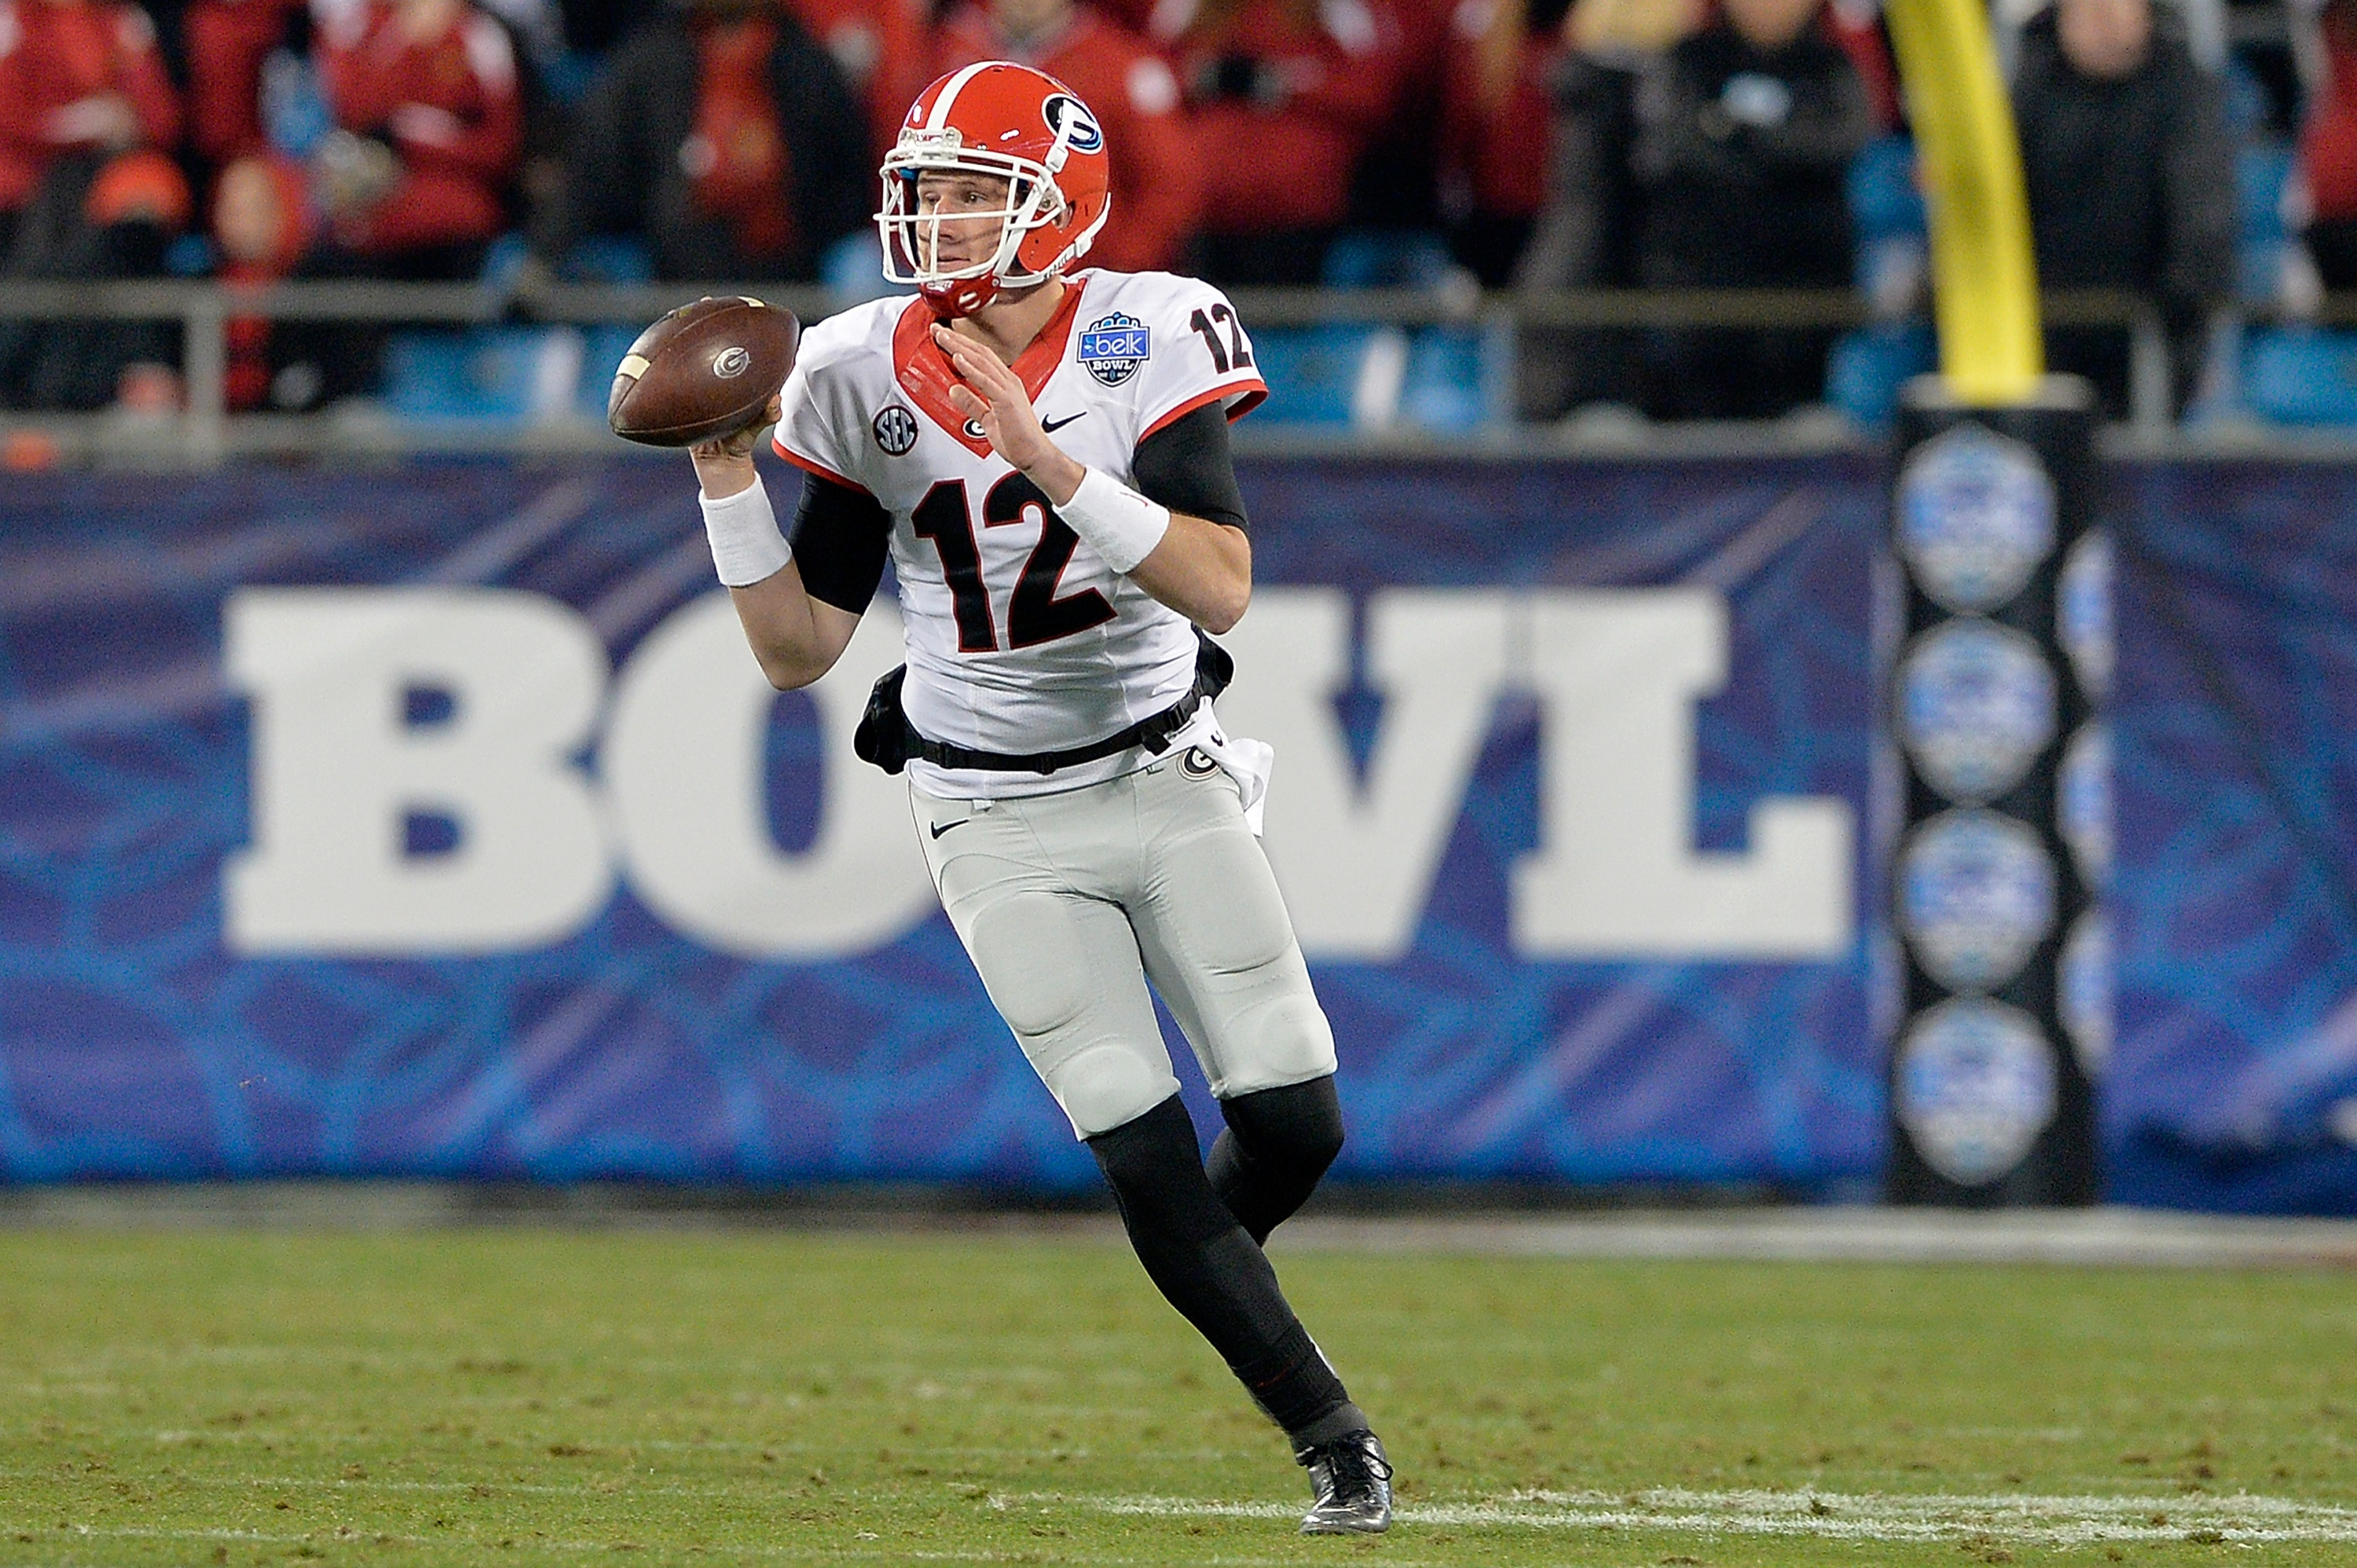 Brice Ramsey #12 rolls out against Louisville during the Belk Bowl at Bank of America Stadium on December 30, 2014 in Charlotte, North Carolina. (Photo by Grant Halverson/Getty Images)